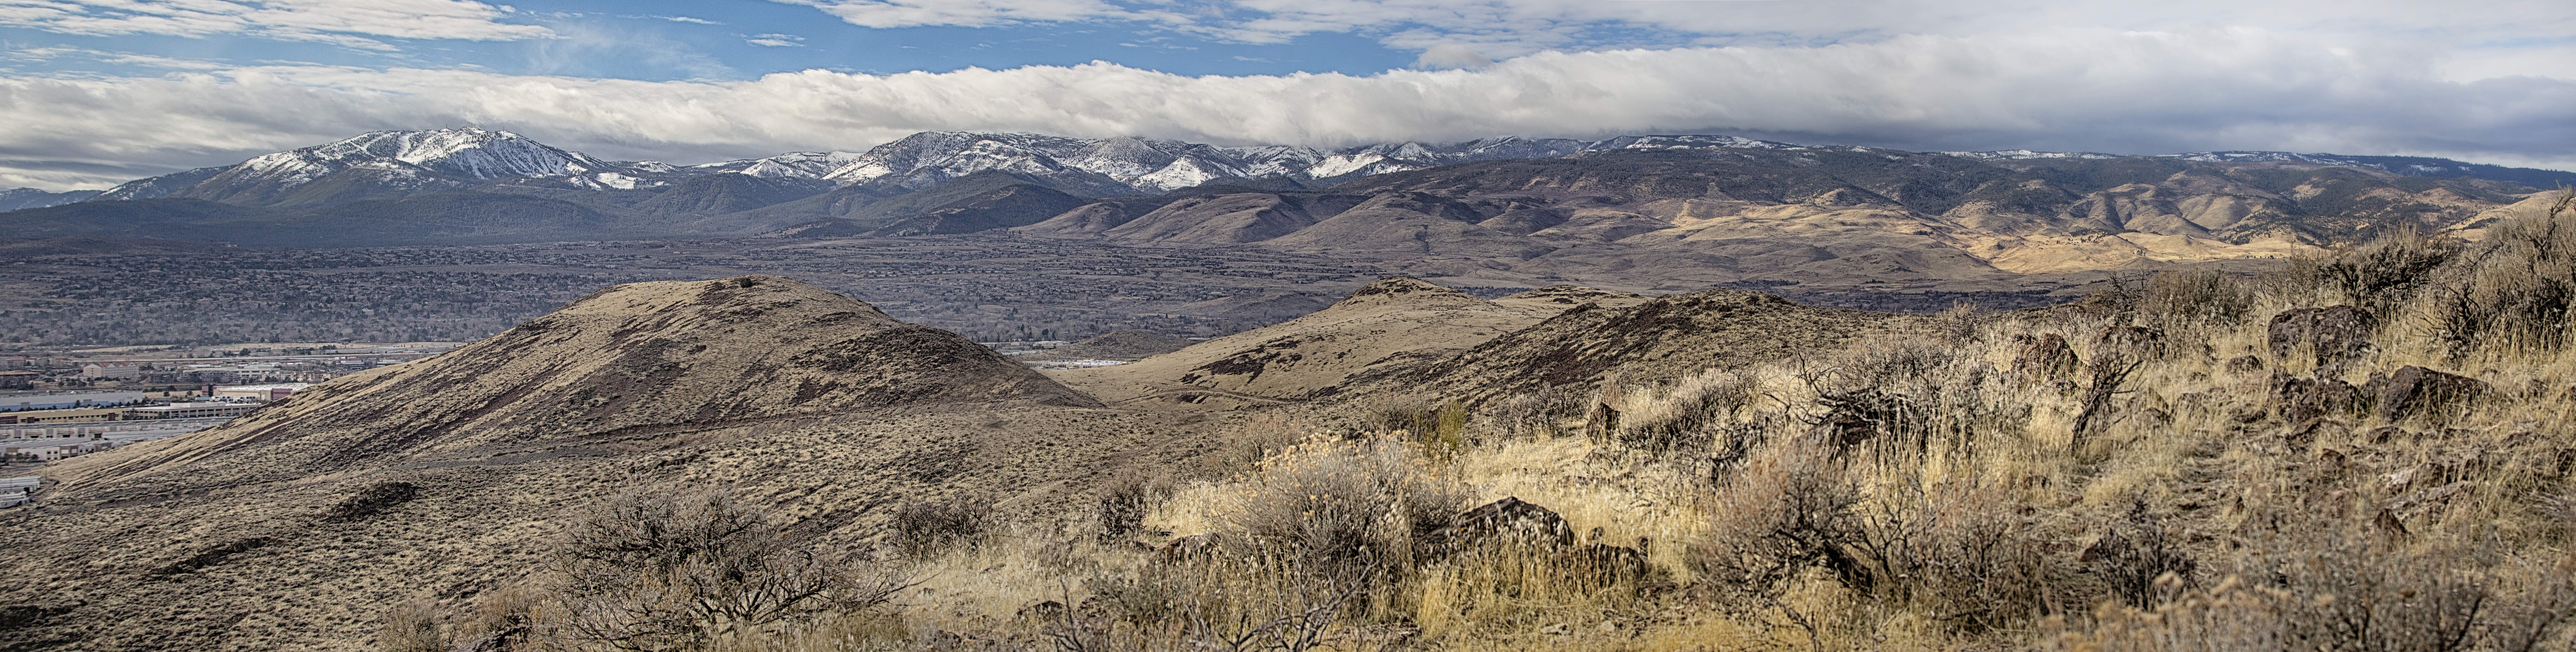 Copy of SnowyMountainsDayPano